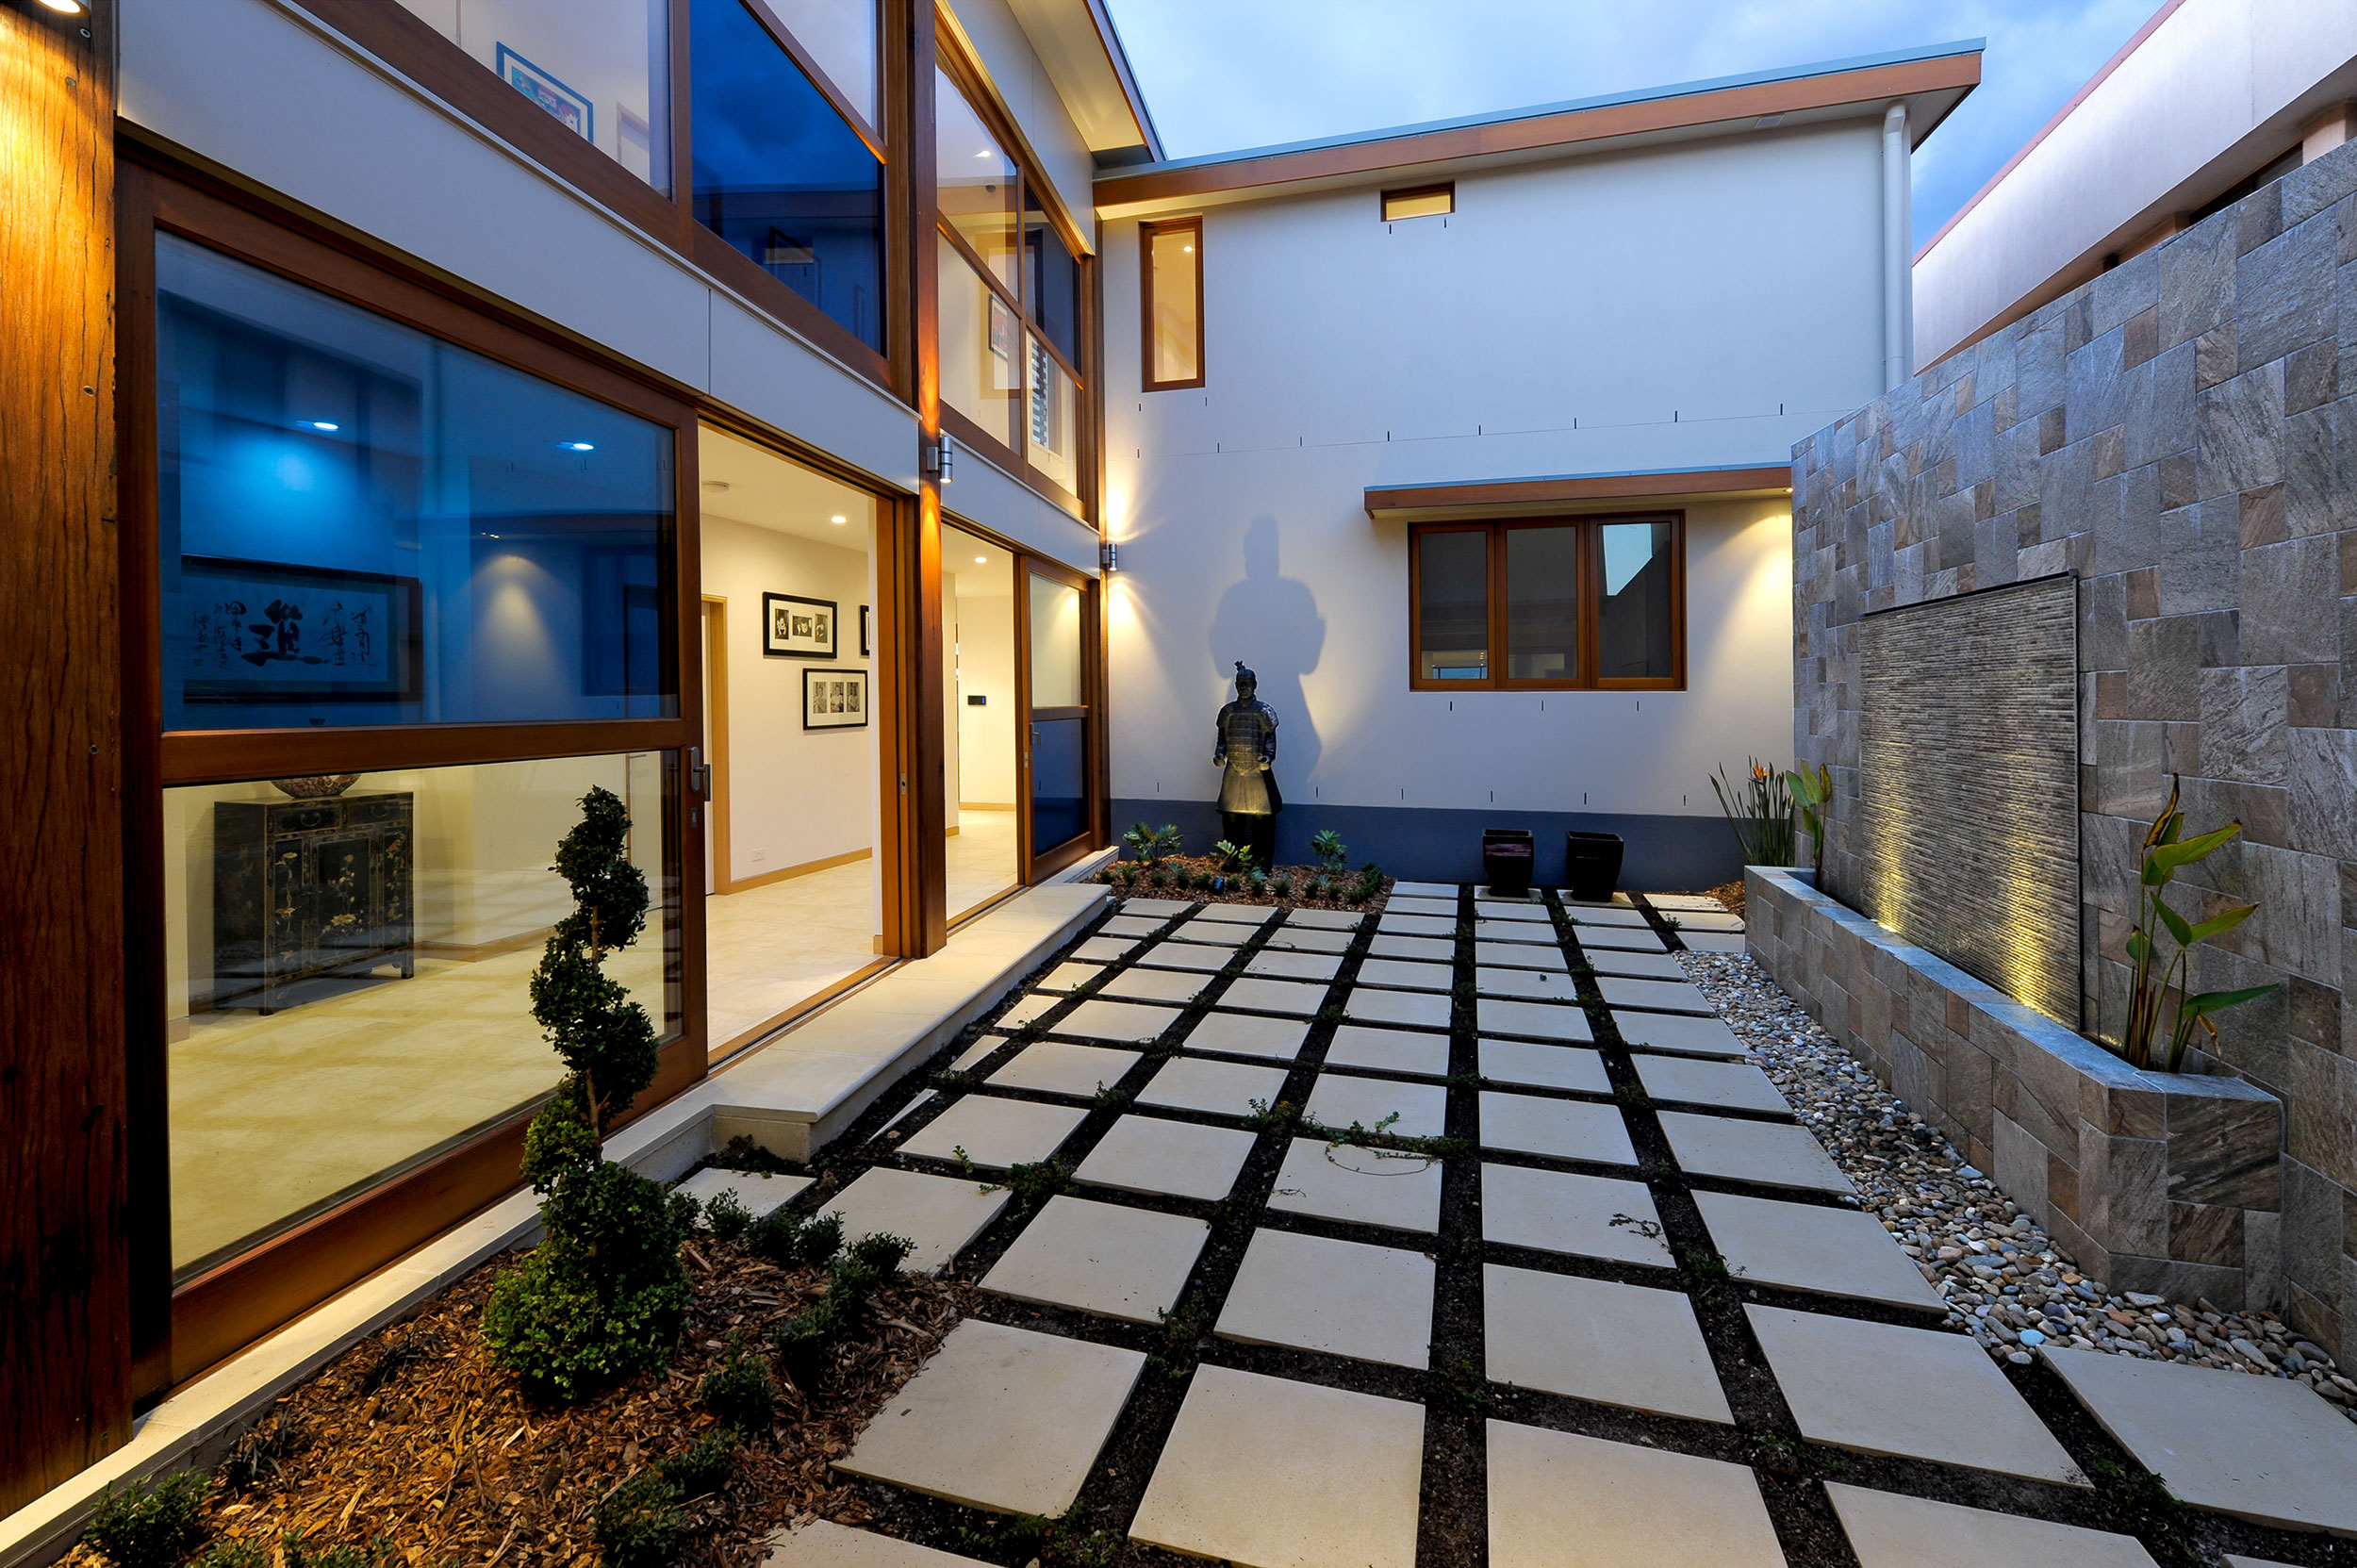 Lan Yue Ge – Luxury Home by Rustic Touch